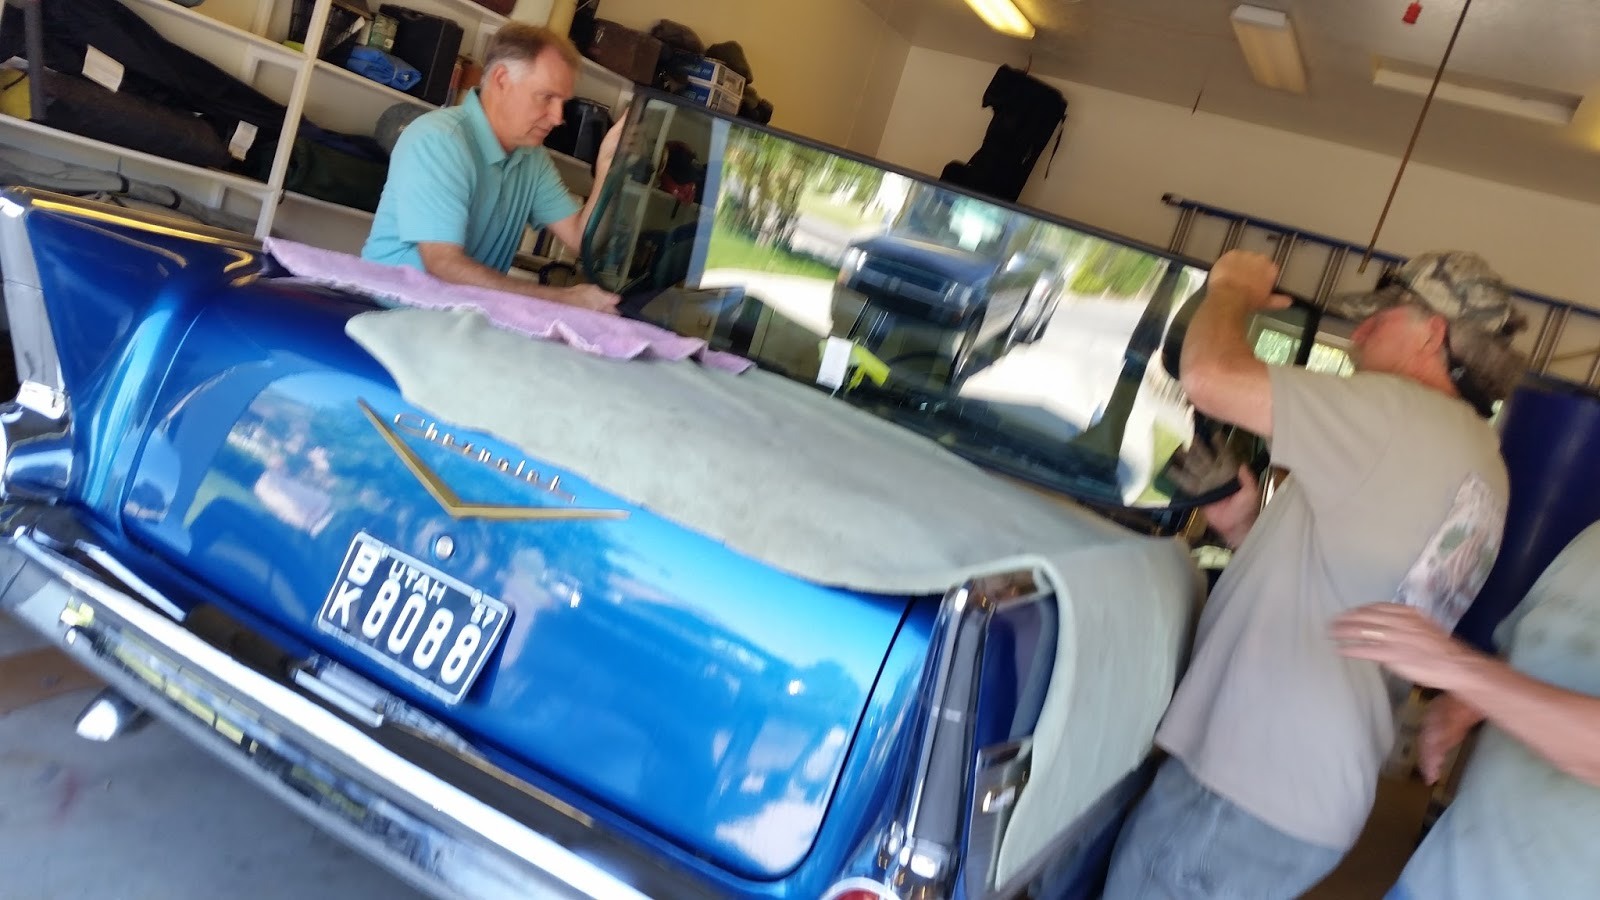 1957 Chevy Belair Restoration Side Window Seal I Was In Charge Of The Little Valley Days Car Show This Year And Decided Would Off 57 For First Time Even Though It Is Not Complete